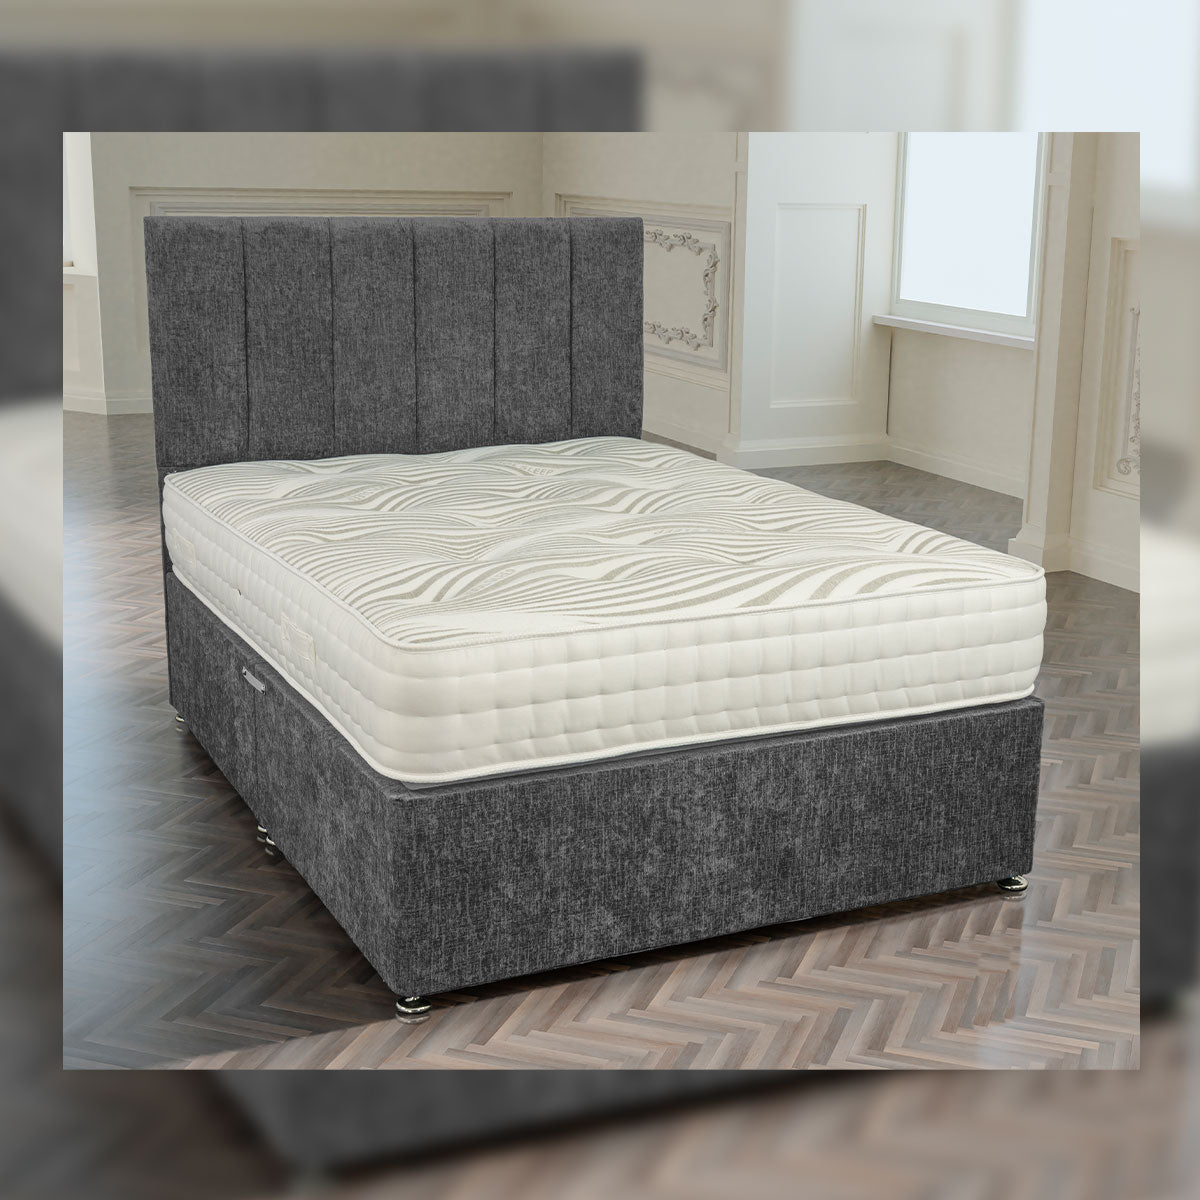 Richmond 2000 Pocket Cool Cotton Mattress Available In Medium Medium Firm And Firm Comfort